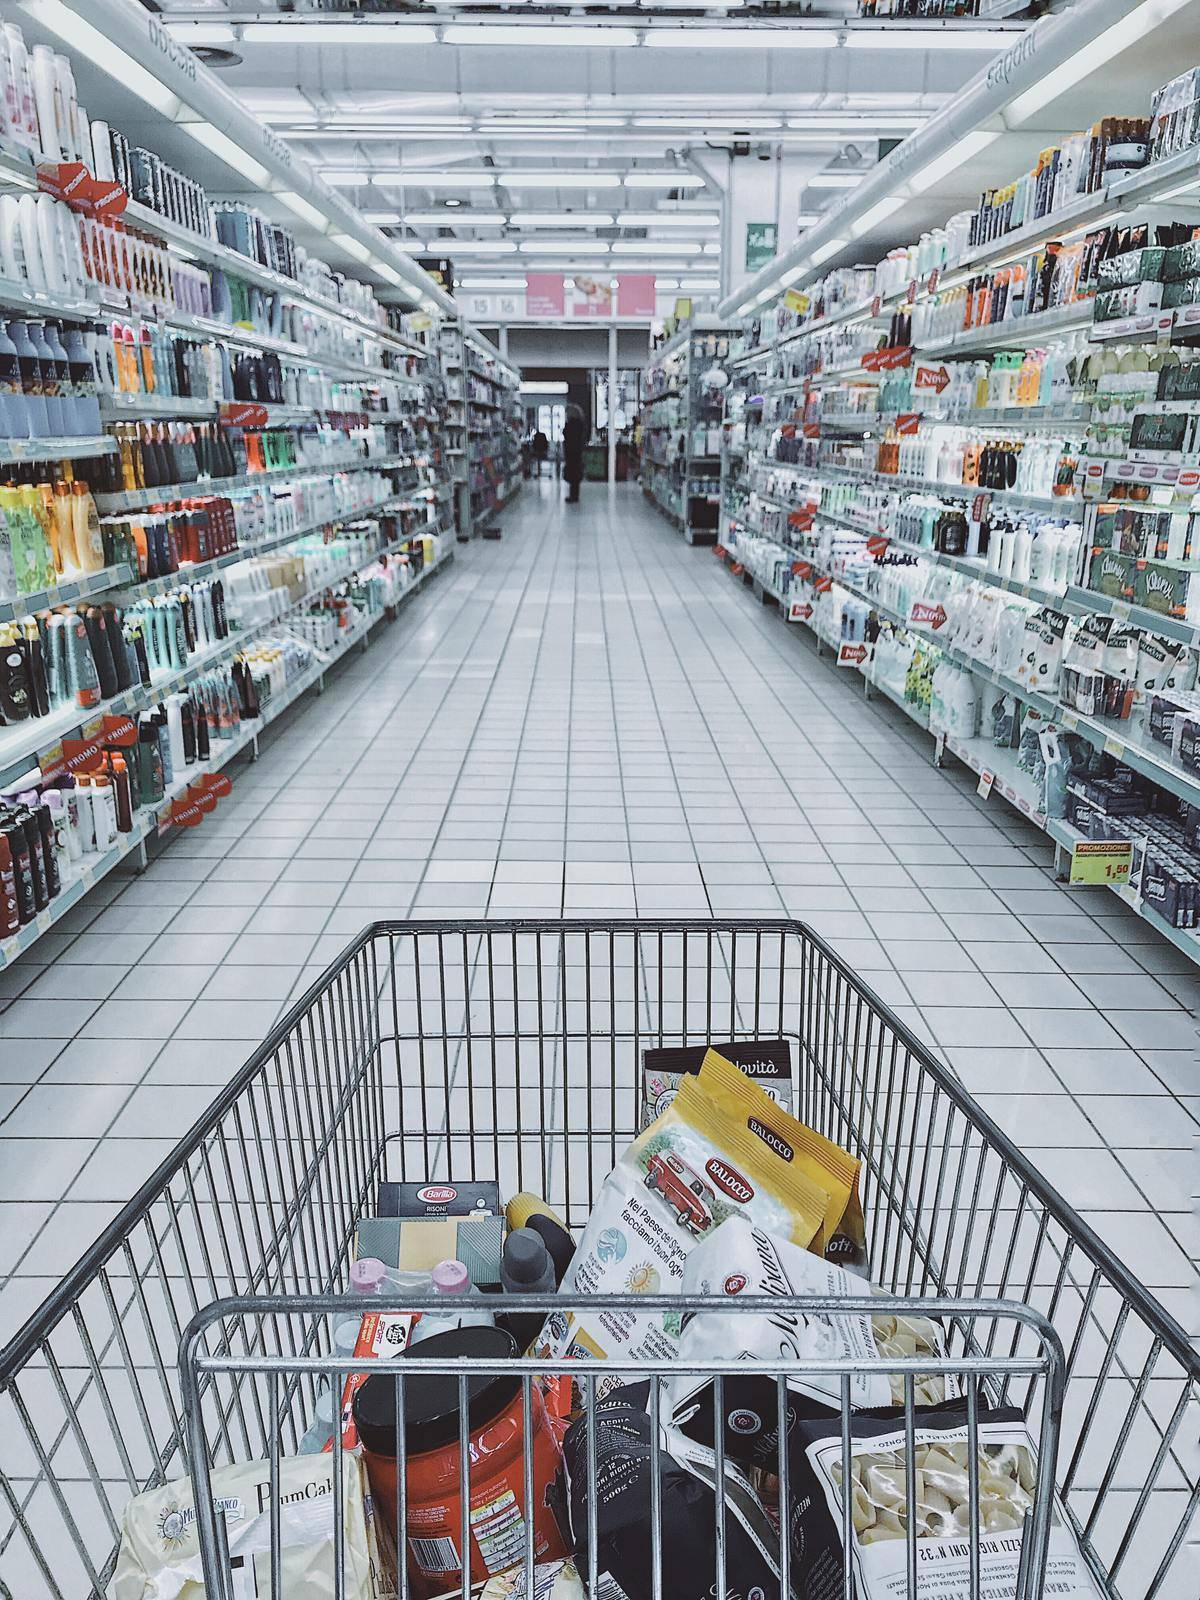 cart with items inside going down grocery aisle